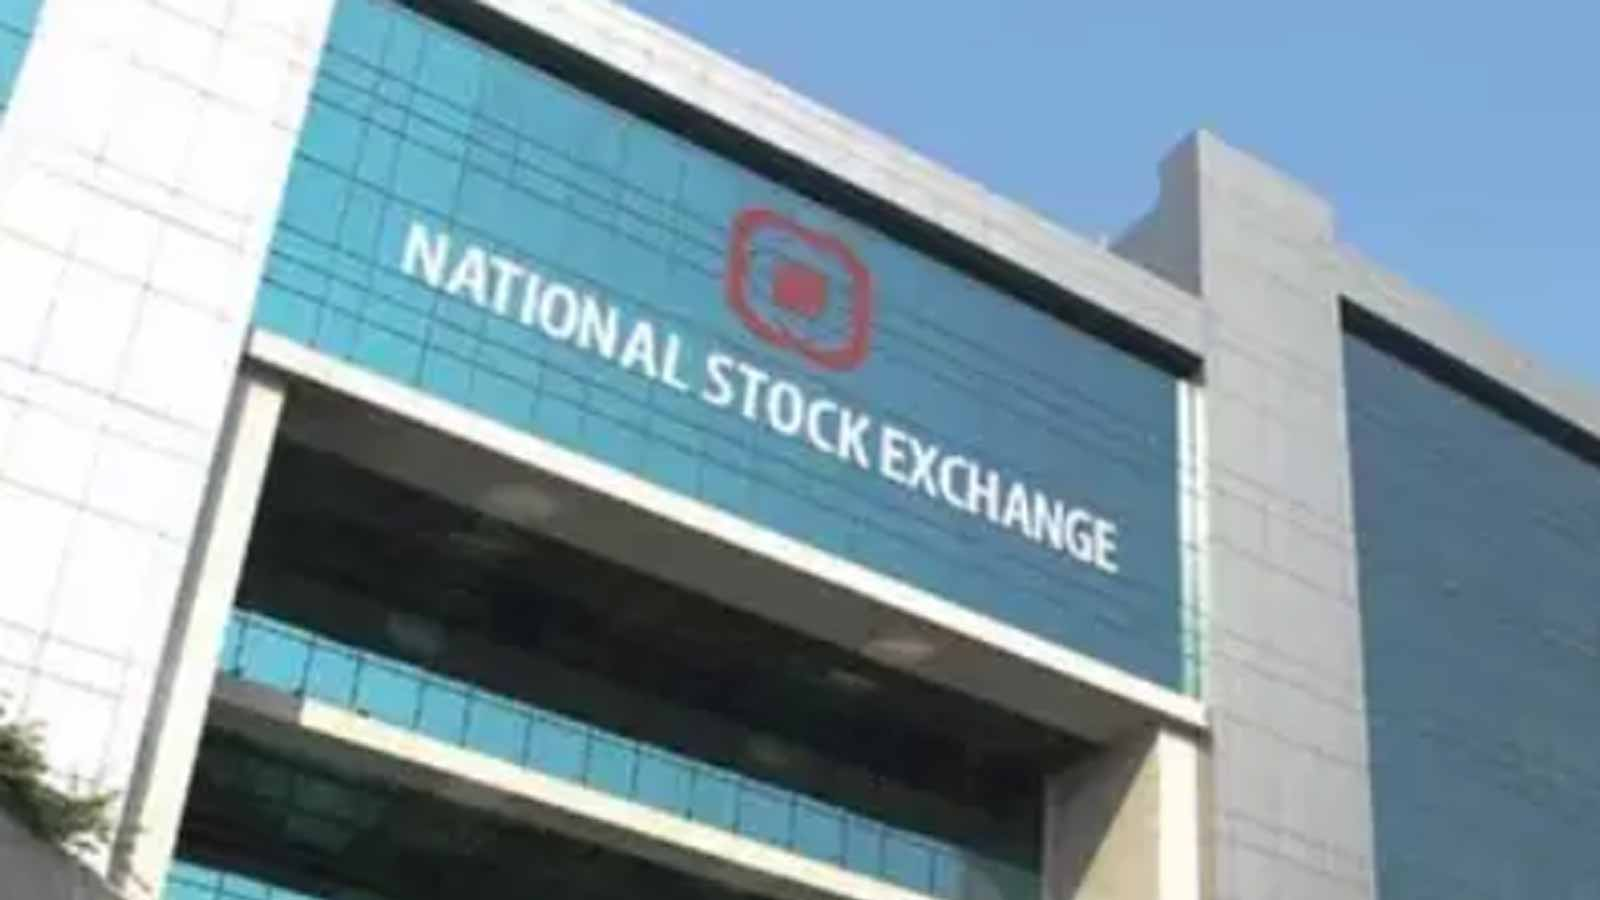 trading-halted-at-national-stock-exchange-due-to-technical-glitch